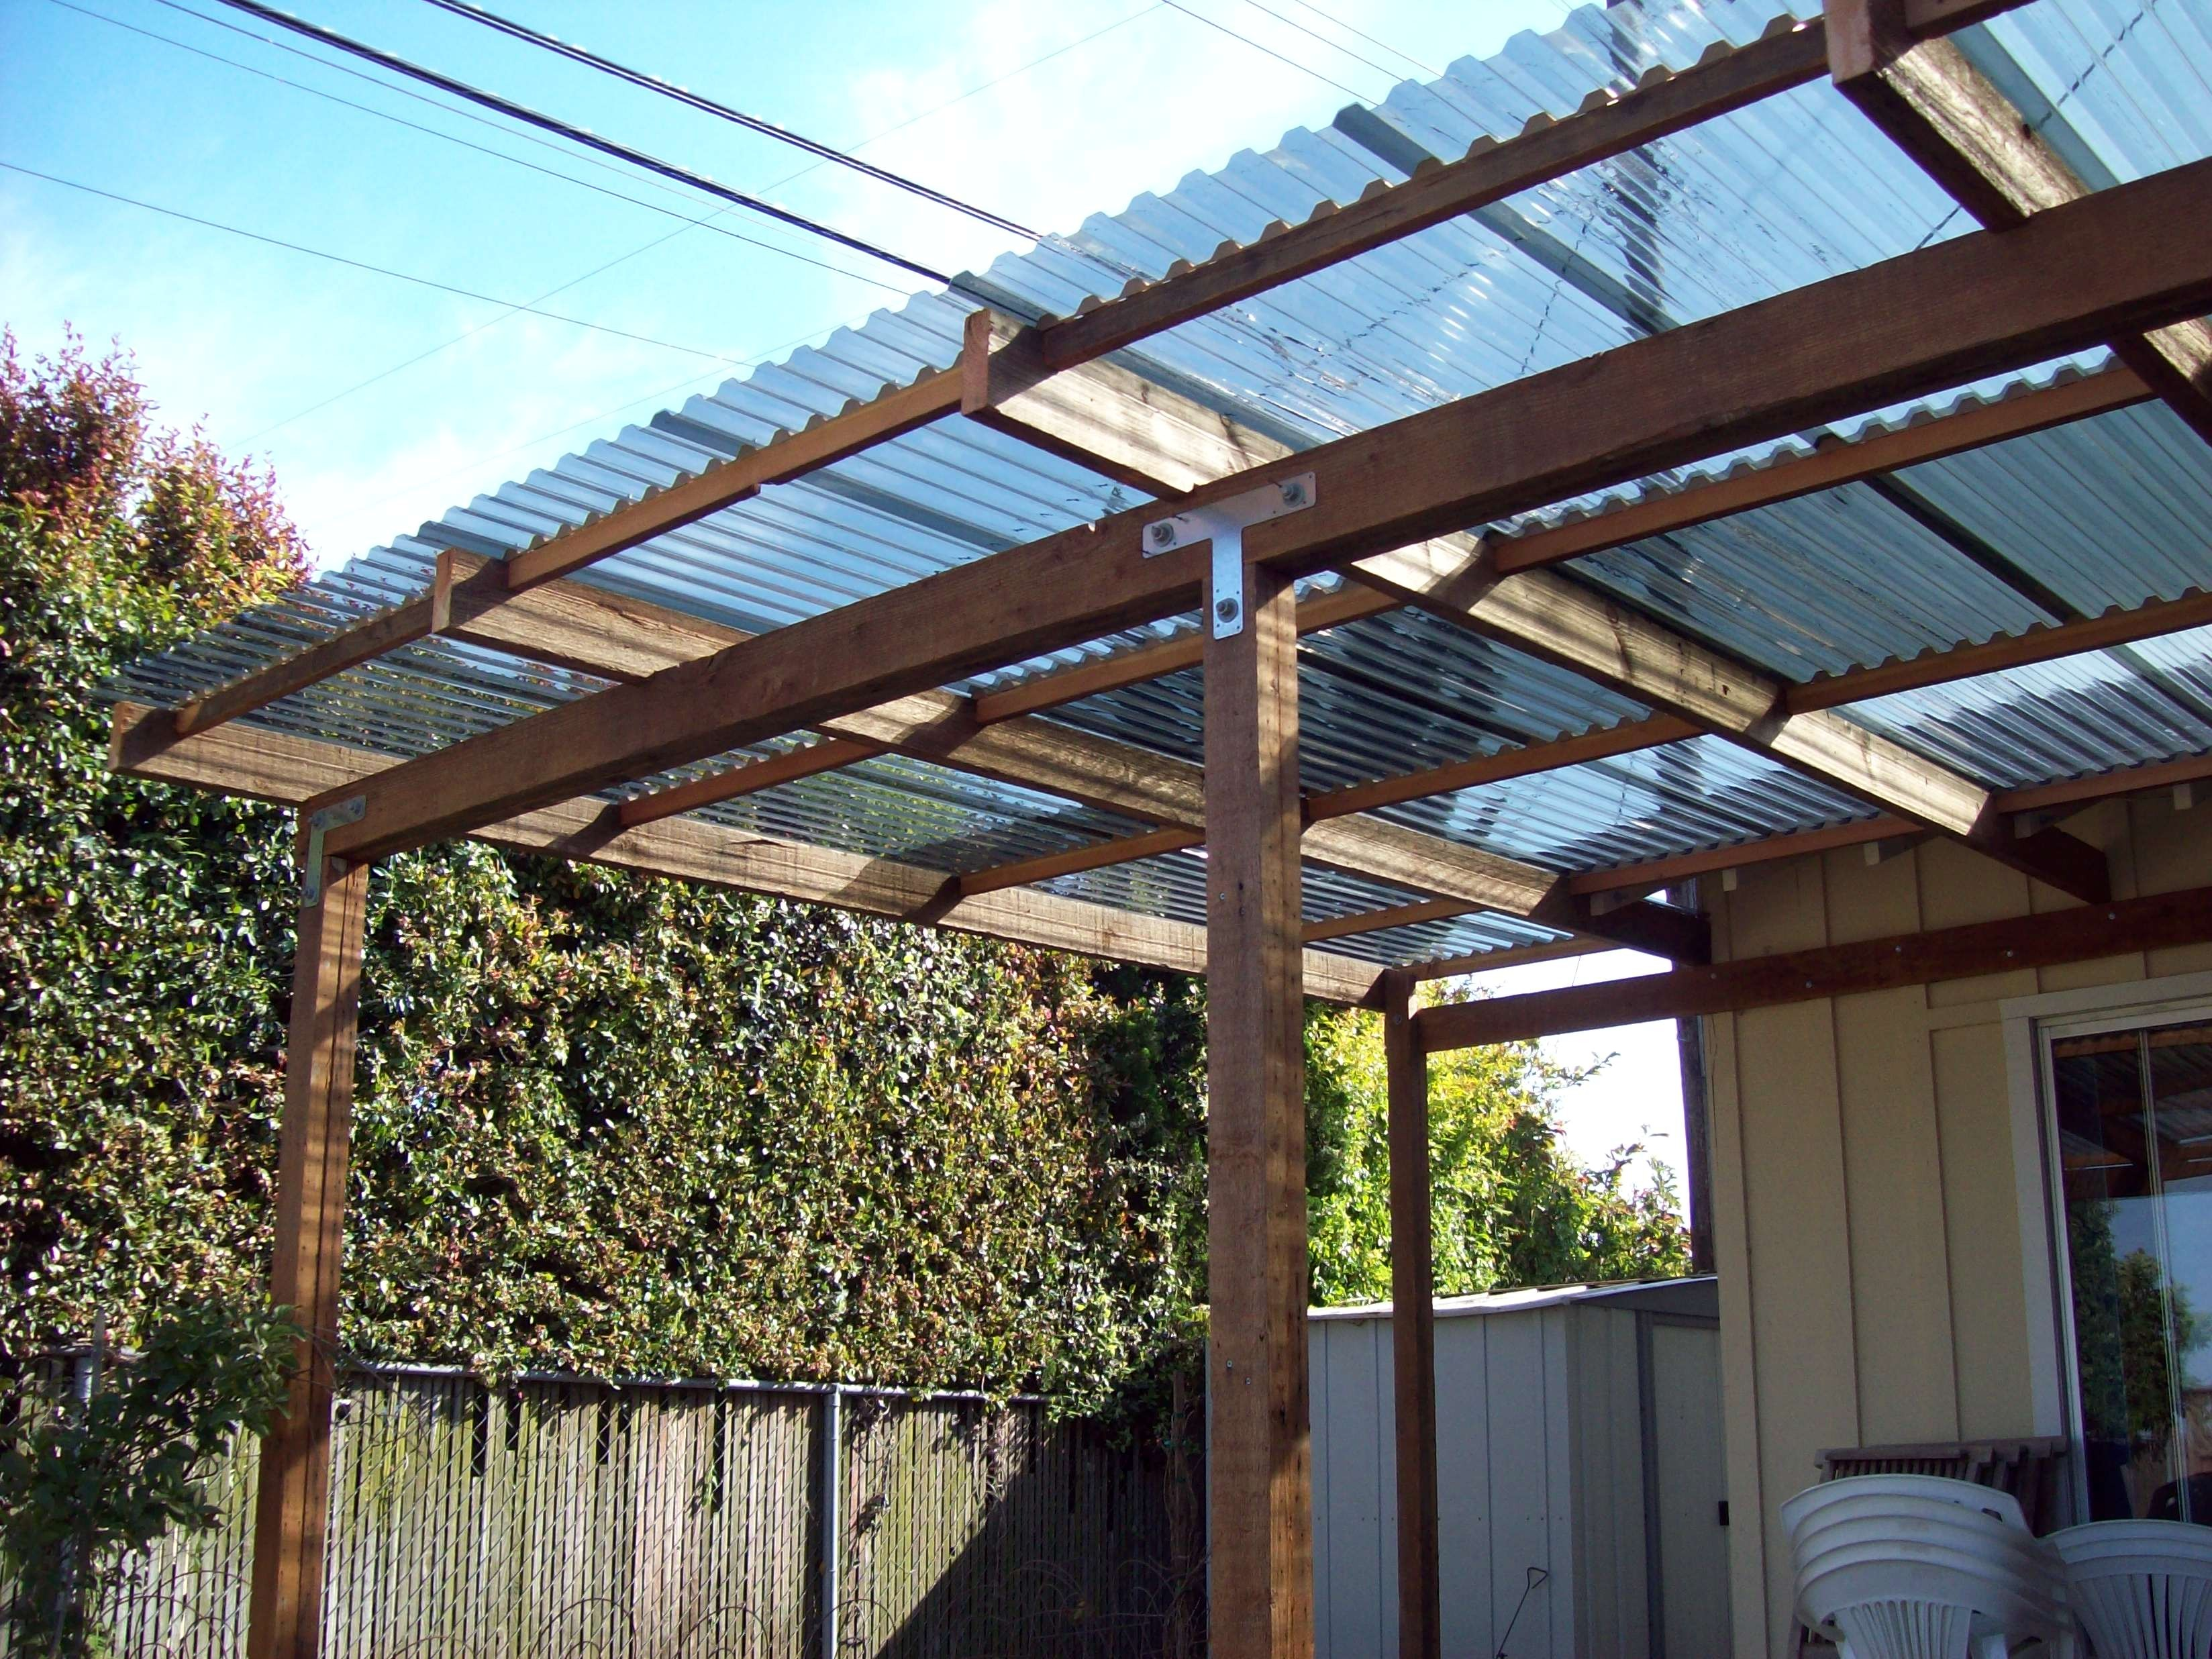 patio cover ideas build a covered patio new patio cover plans popular patio ideas with PLRJNCY